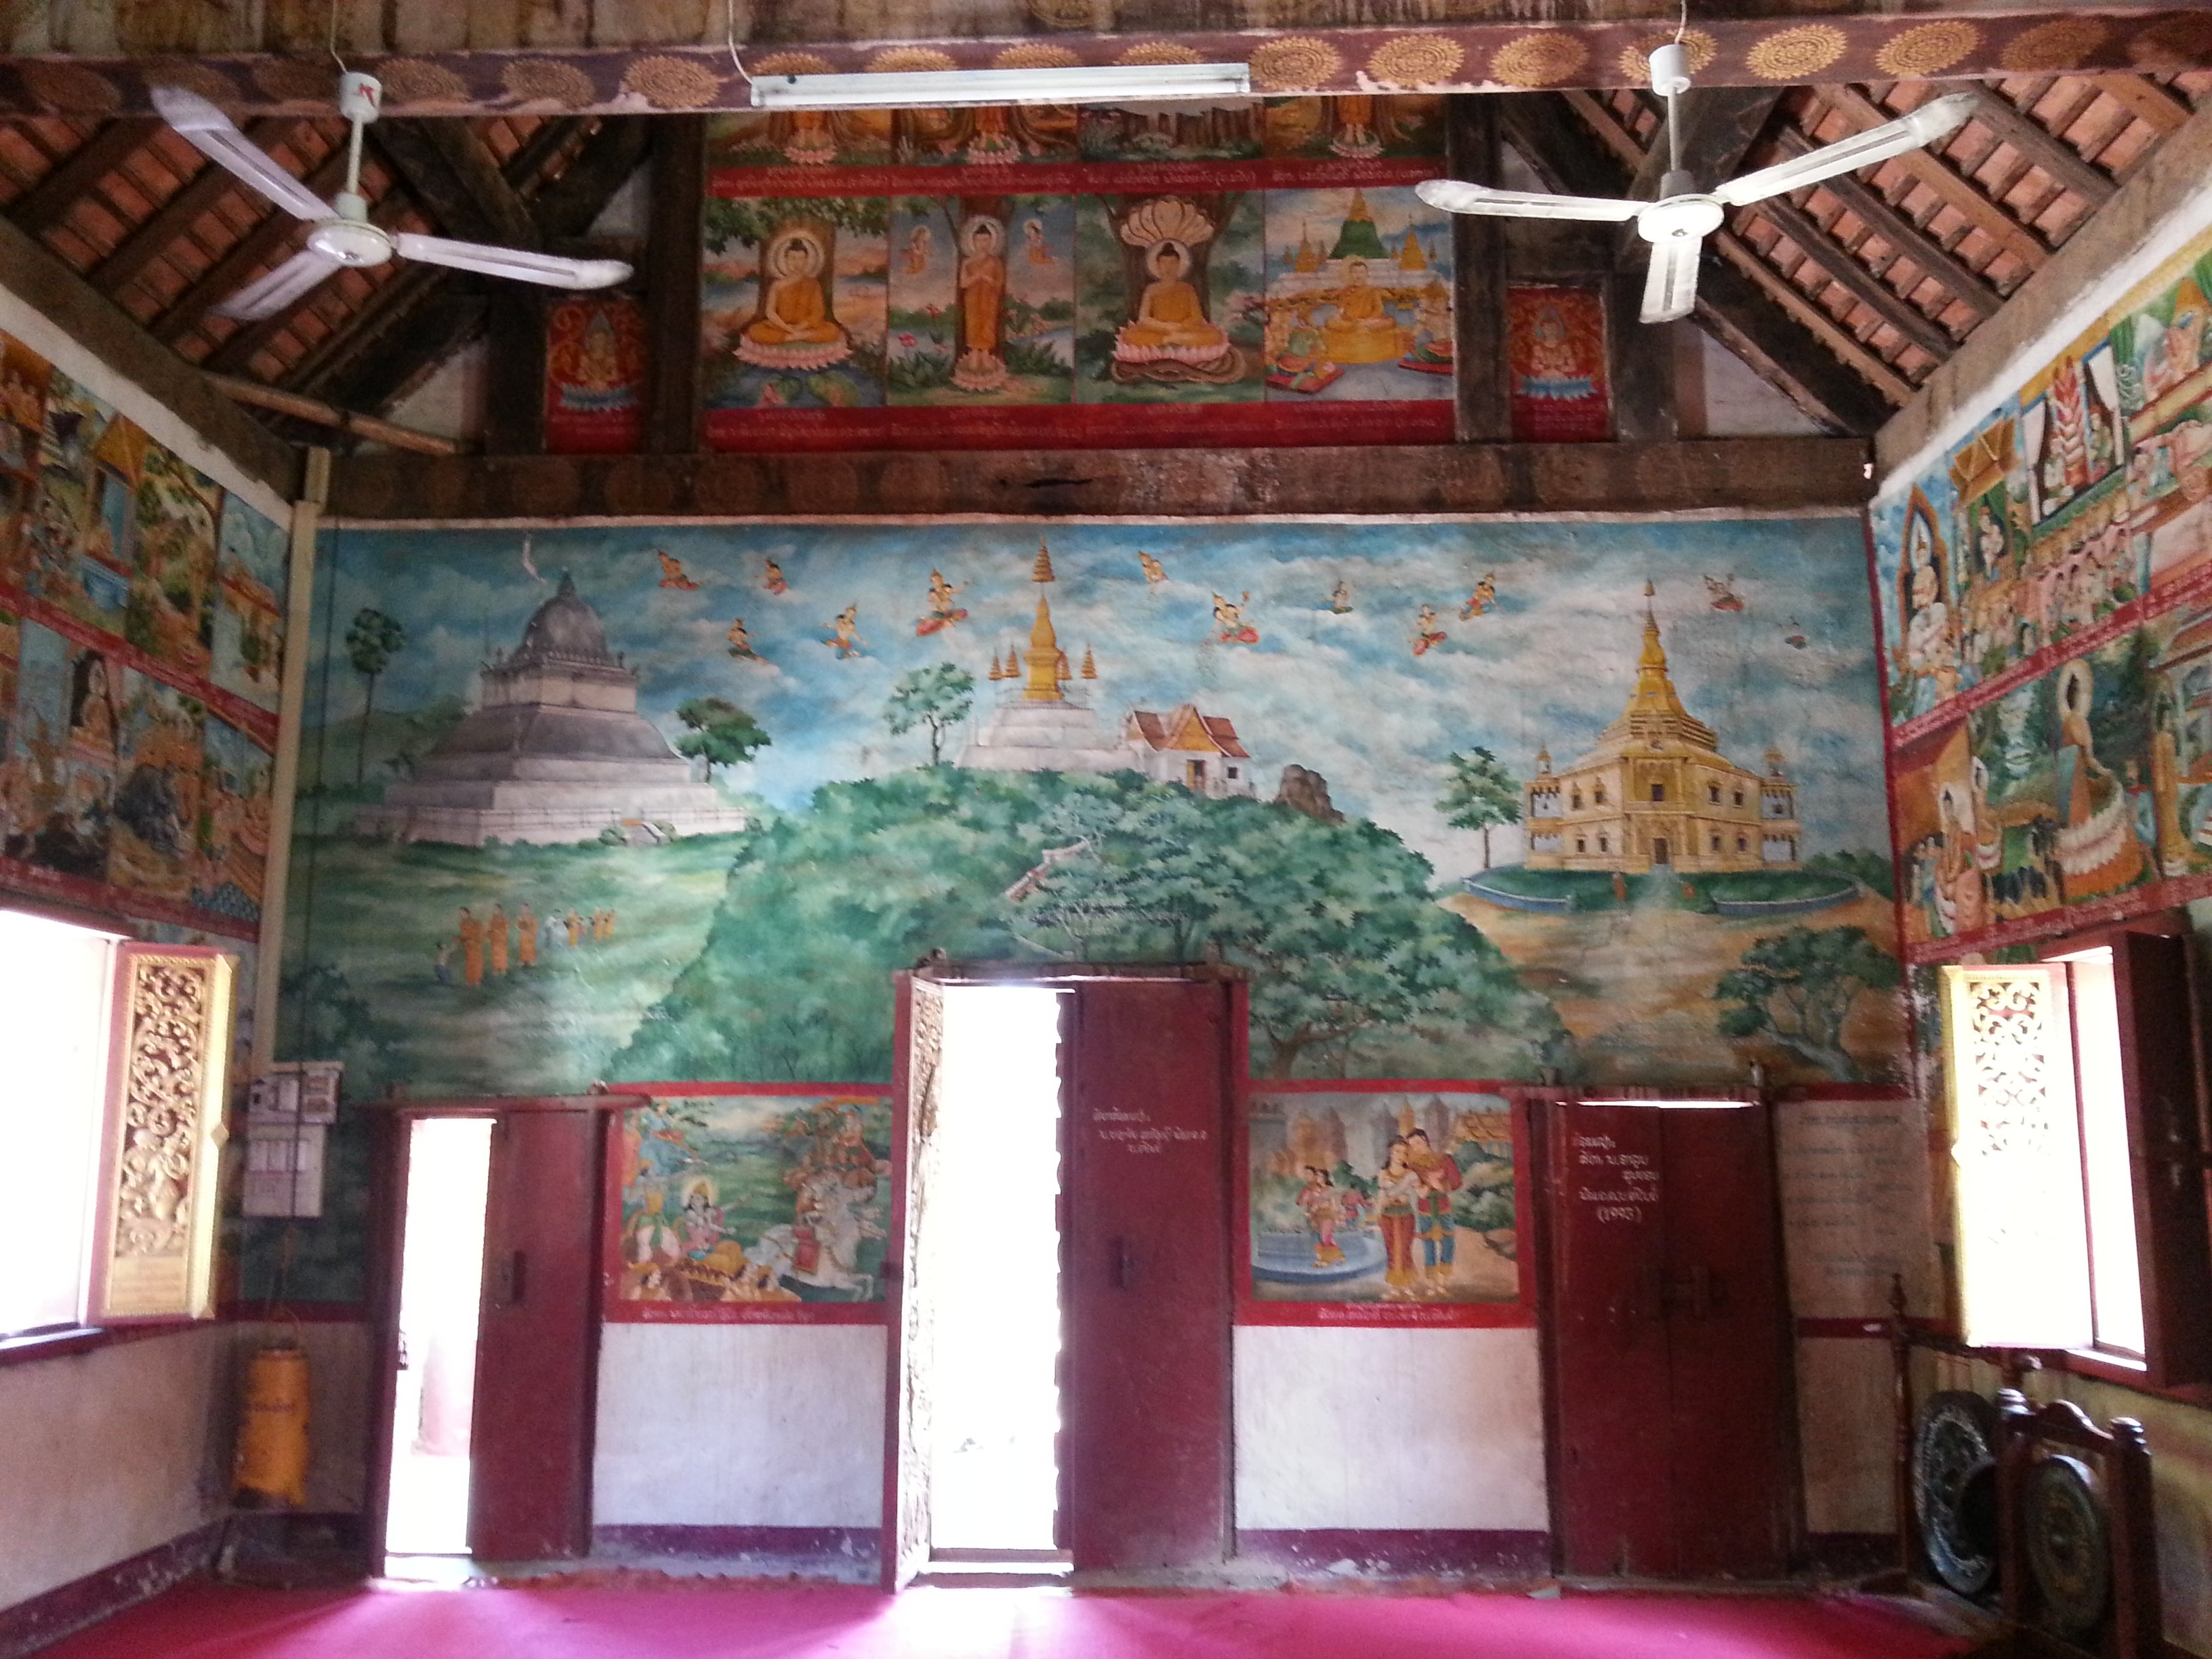 Murals telling the history of Luang Prabang